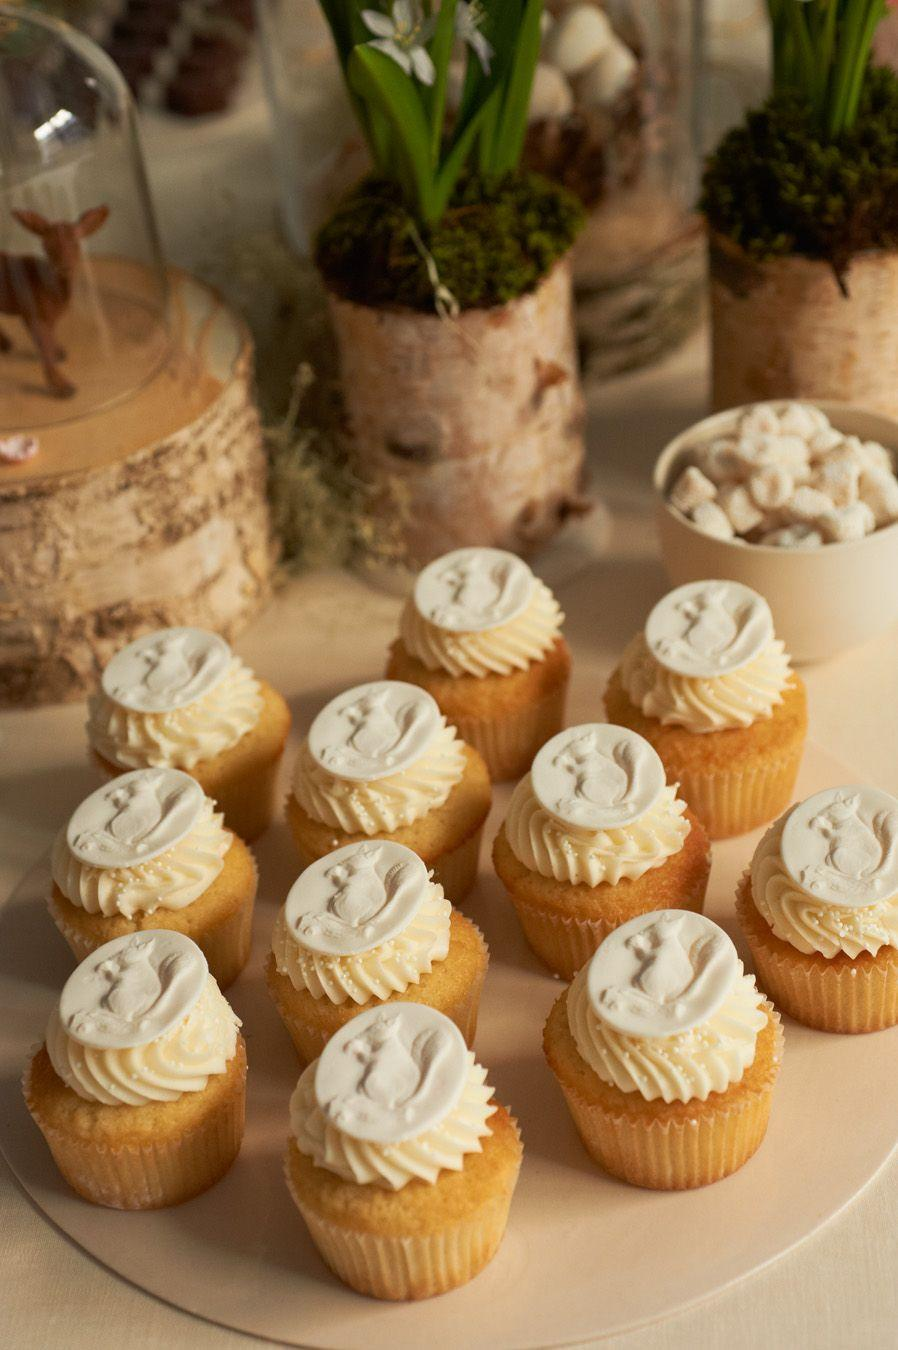 """<p>""""Bring a bit of the outdoors in for your tablescape. Incorporate woodland creatures, like squirrels and deer, into the smaller details for a bit of surprise and delight, like I have here on these cupcakes as seen in my book, <em>Celebrate Everything!</em>. Mix in flora and fauna with a variety of white flowers. You can use unique vessels, like these birch rounds, to play up the nature theme."""" <em>—<a href=""""http://www.darcymillerdesigns.com/"""" rel=""""nofollow noopener"""" target=""""_blank"""" data-ylk=""""slk:Darcy Miller"""" class=""""link rapid-noclick-resp"""">Darcy Miller</a>, Author and Entertaining Expert</em></p>"""